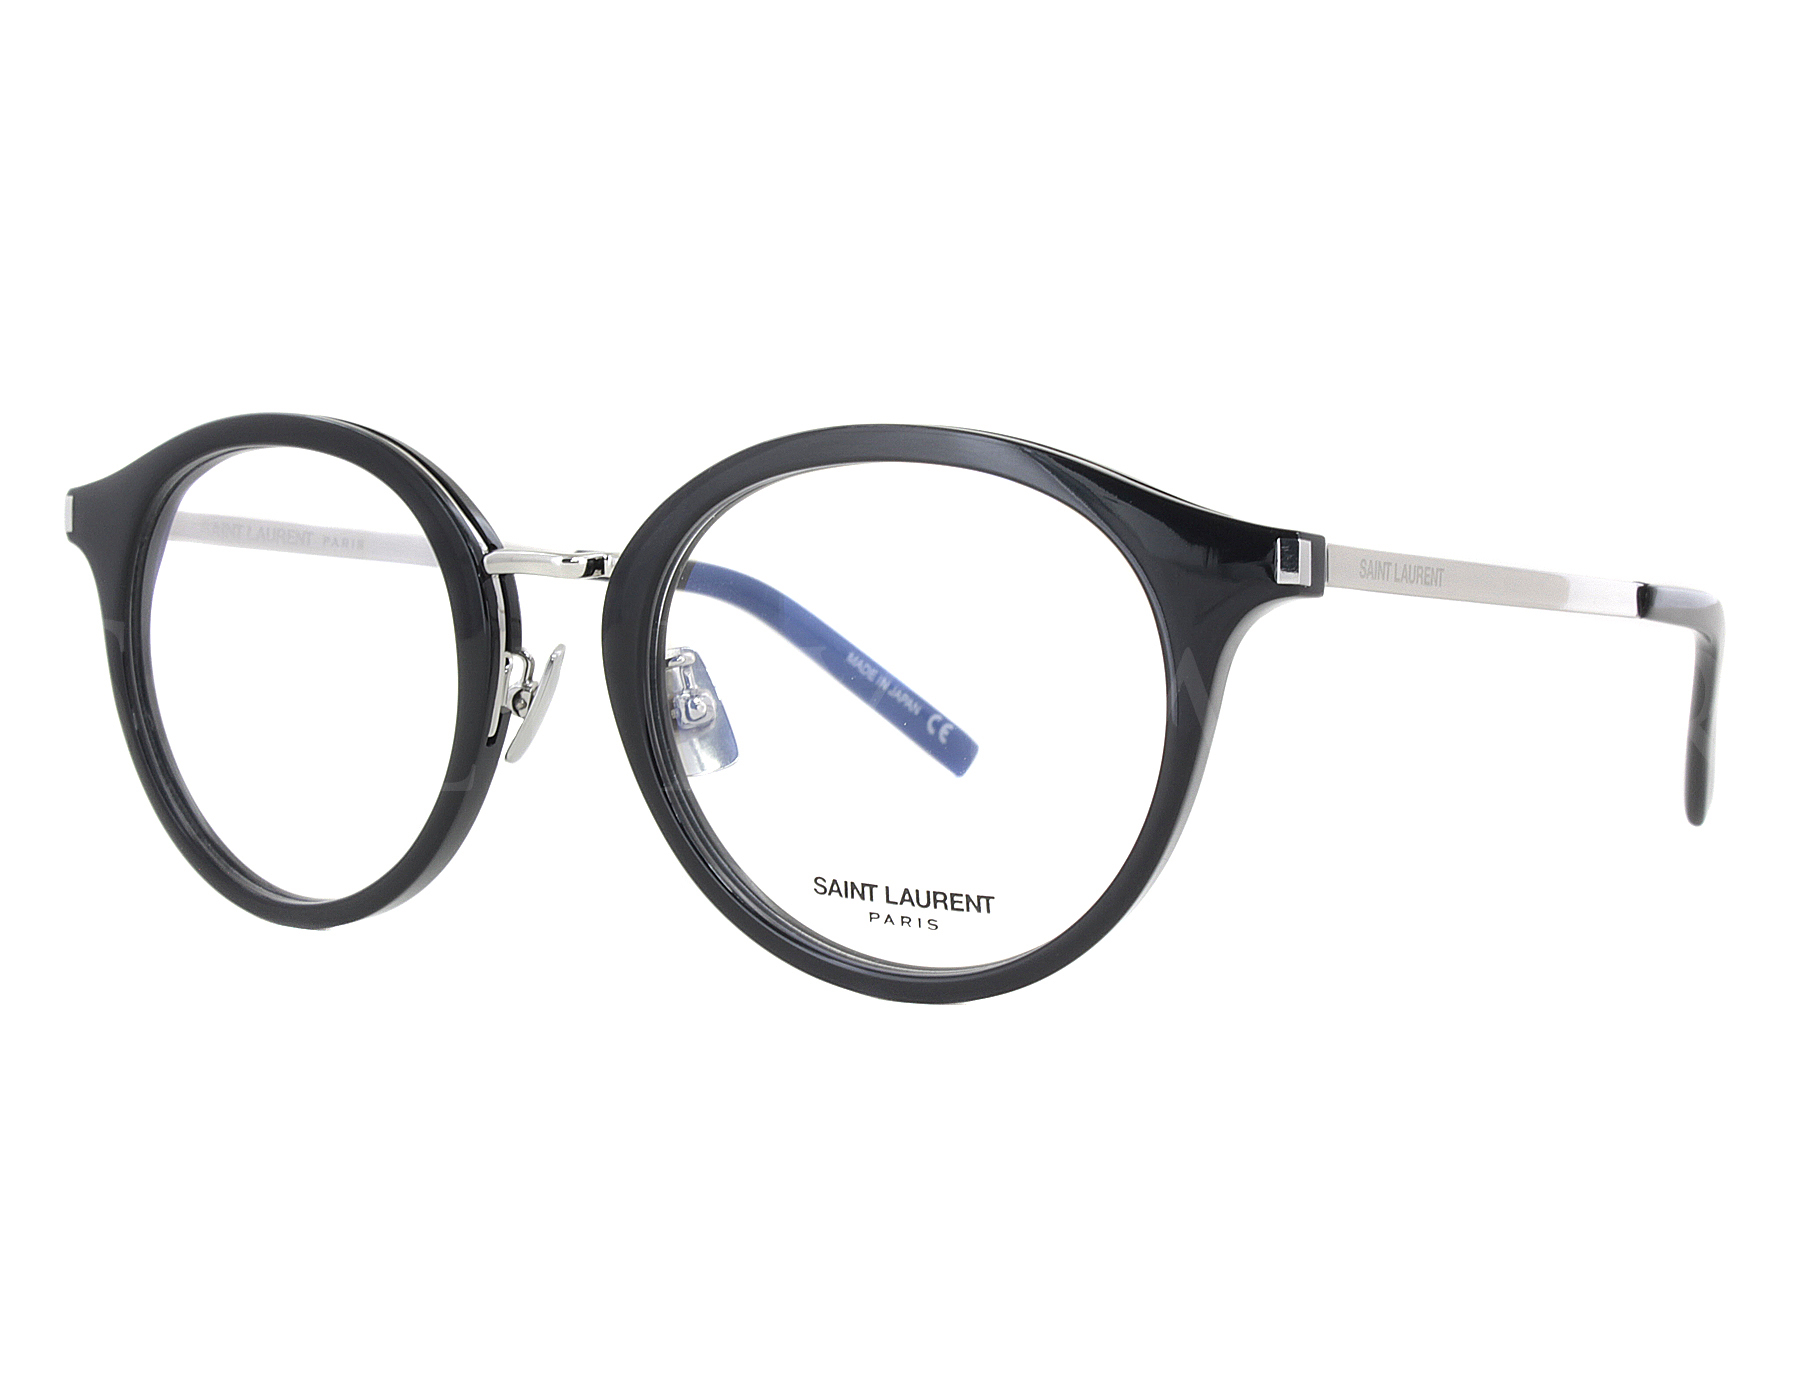 38744e8923 Details about NEW Yves Saint Laurent SL91 001 49mm Silver Optical  Eyeglasses Frames